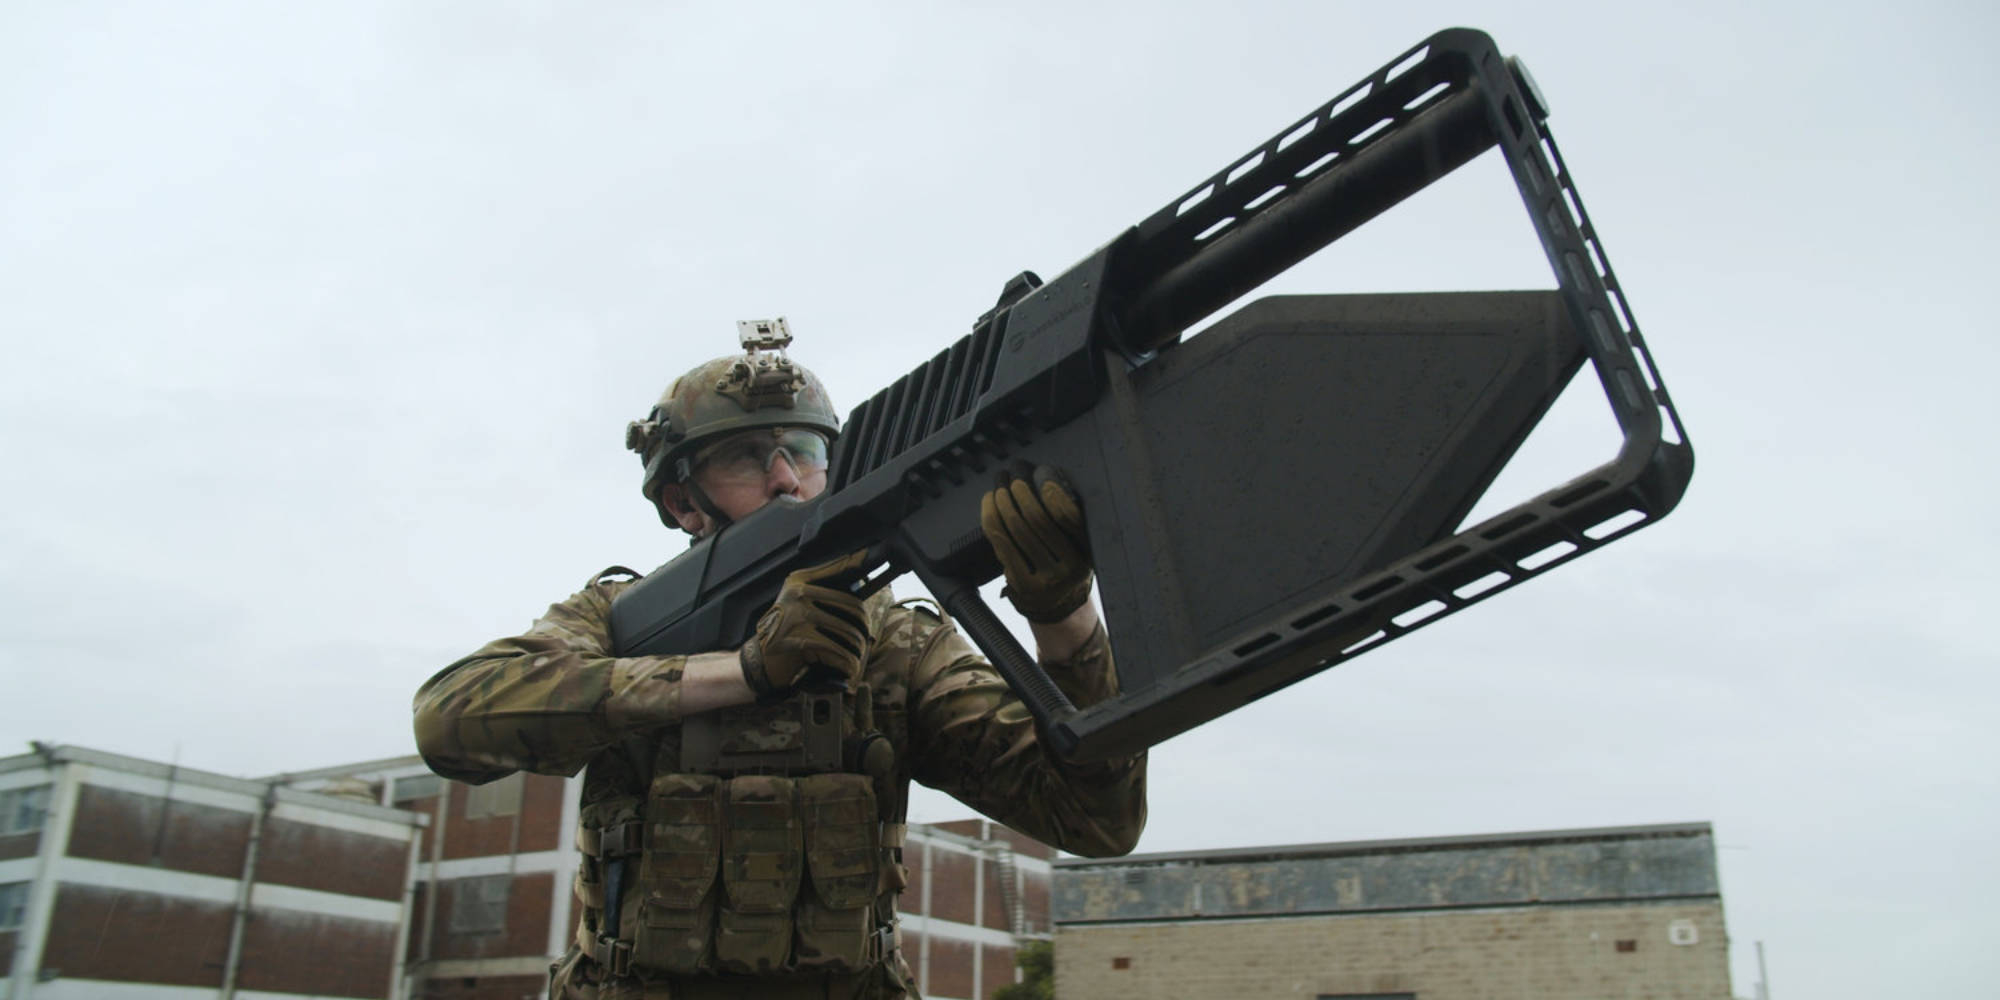 Drone security company DroneShield (ASX:DRO) has announced to shareholders that it has secured funding from the US Department of Defense (DoD) from a